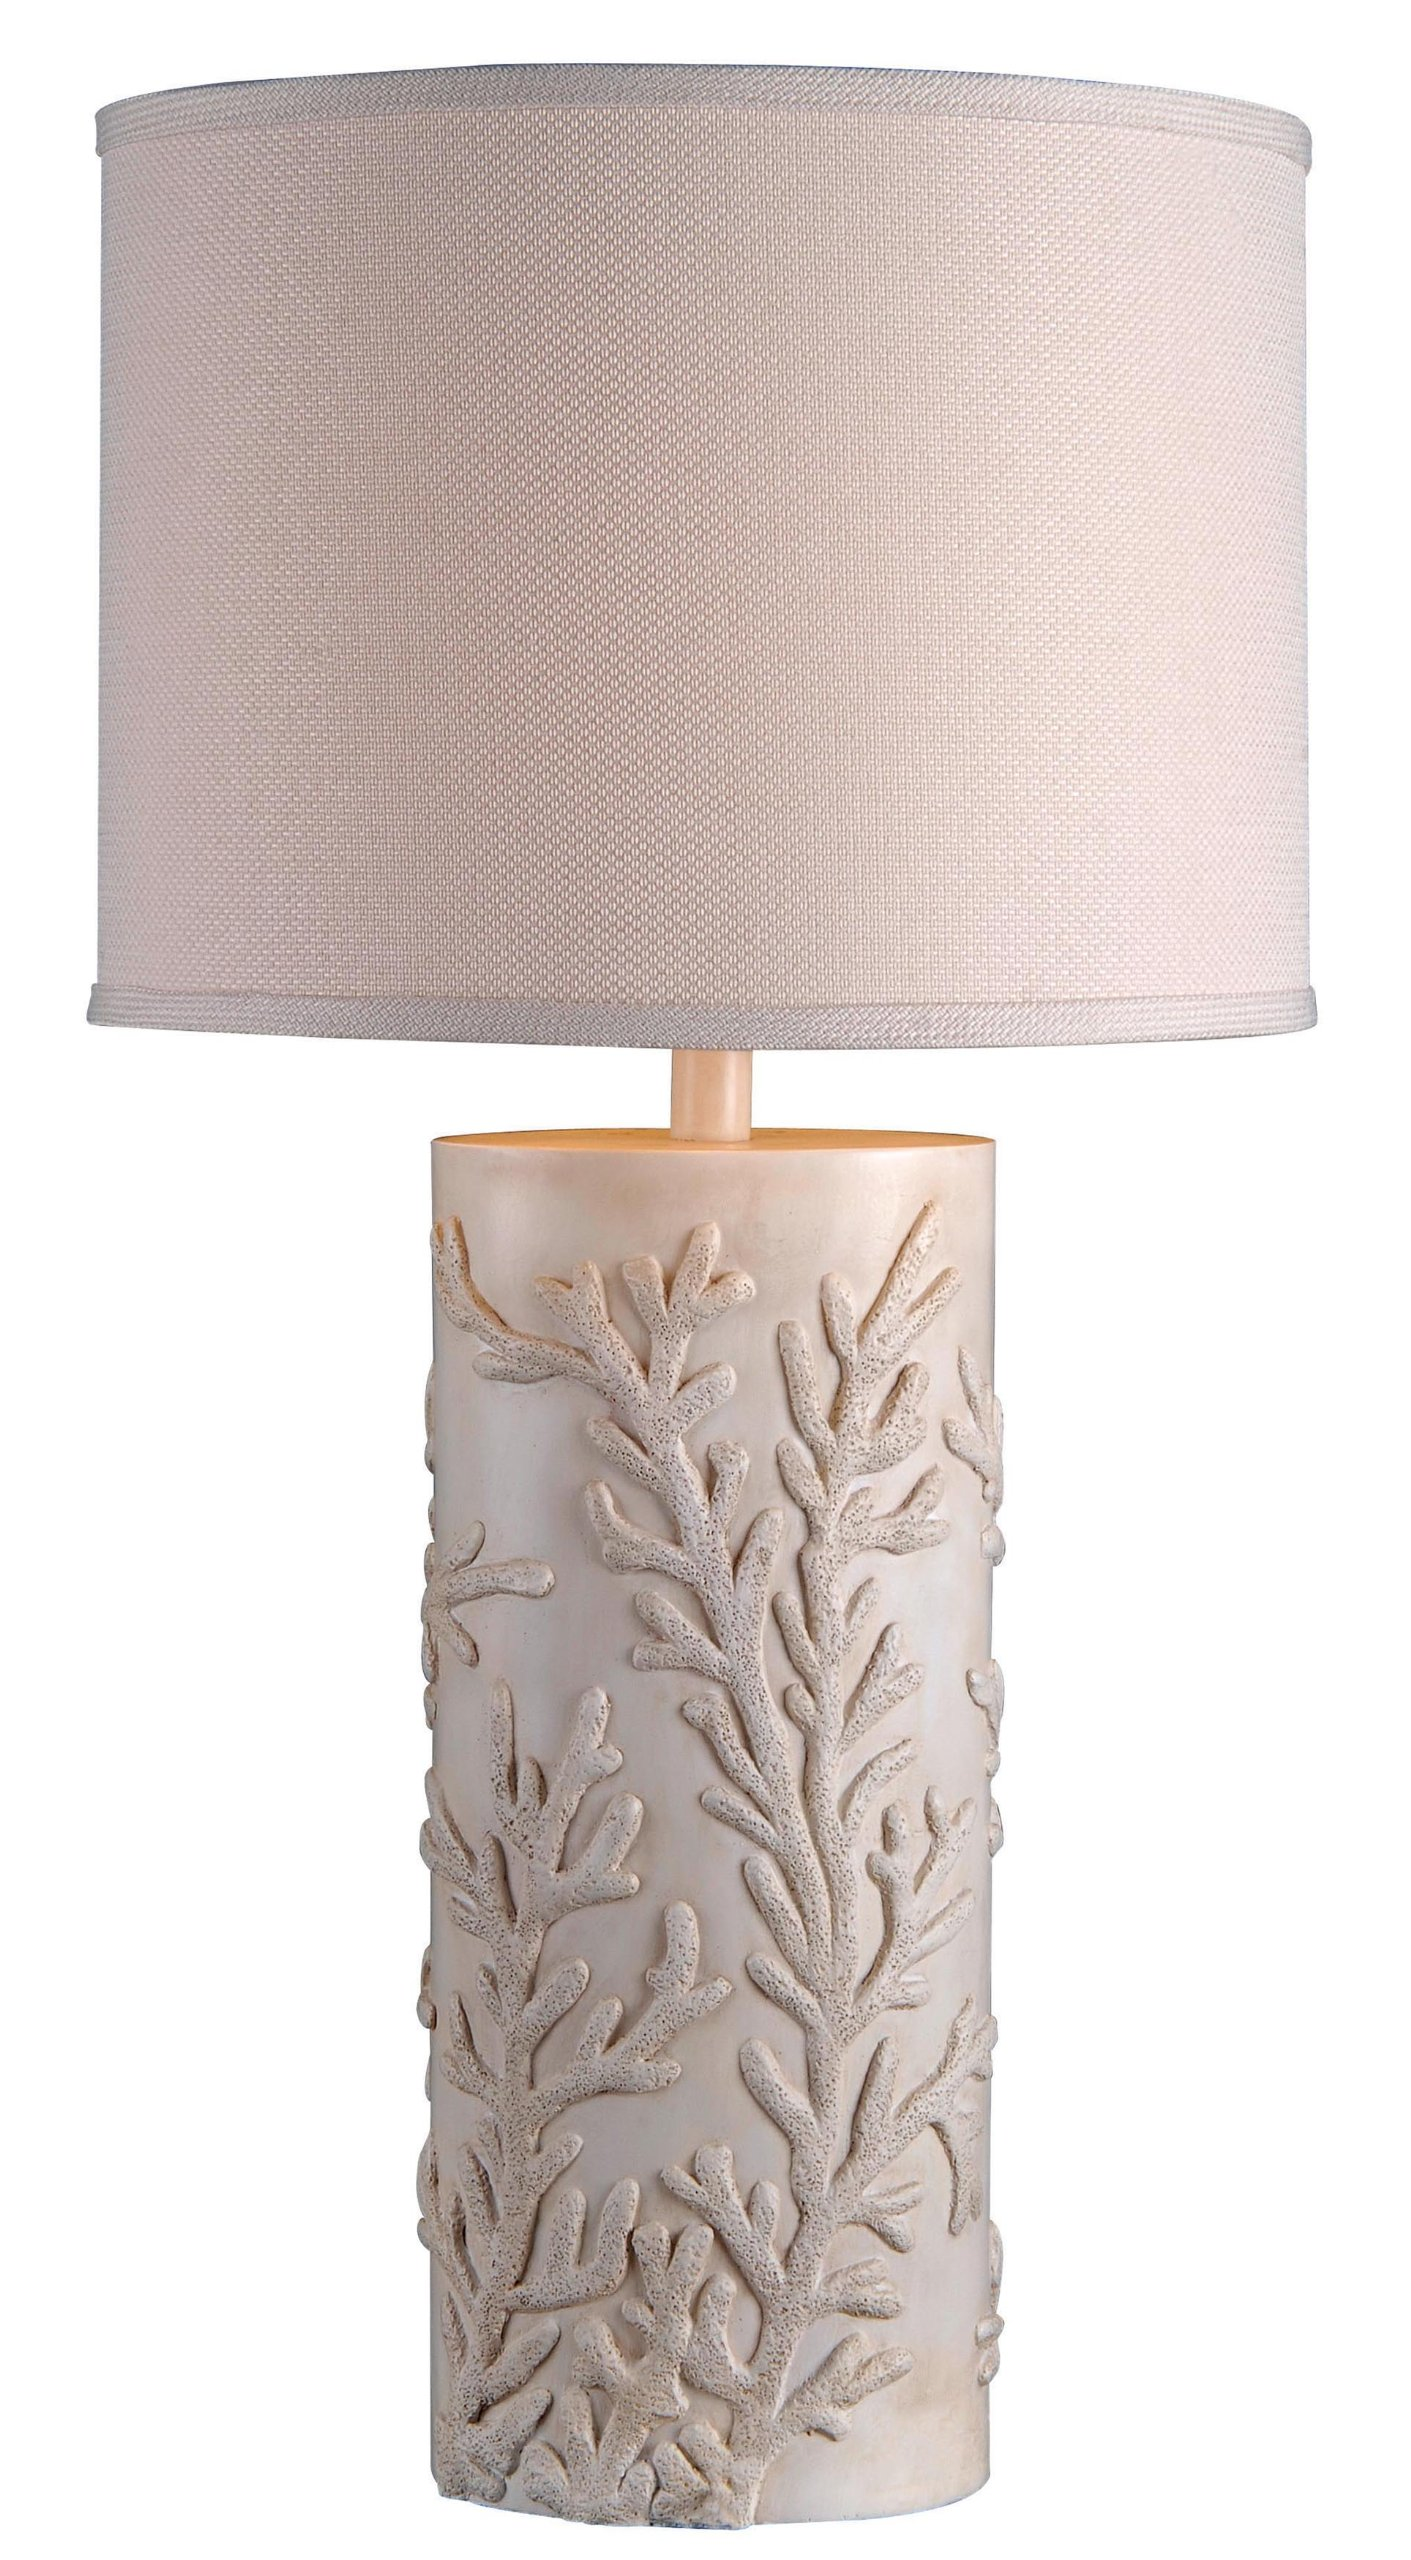 Kenroy Home 32267AWH Reef Table Lamp, Antique White Finish